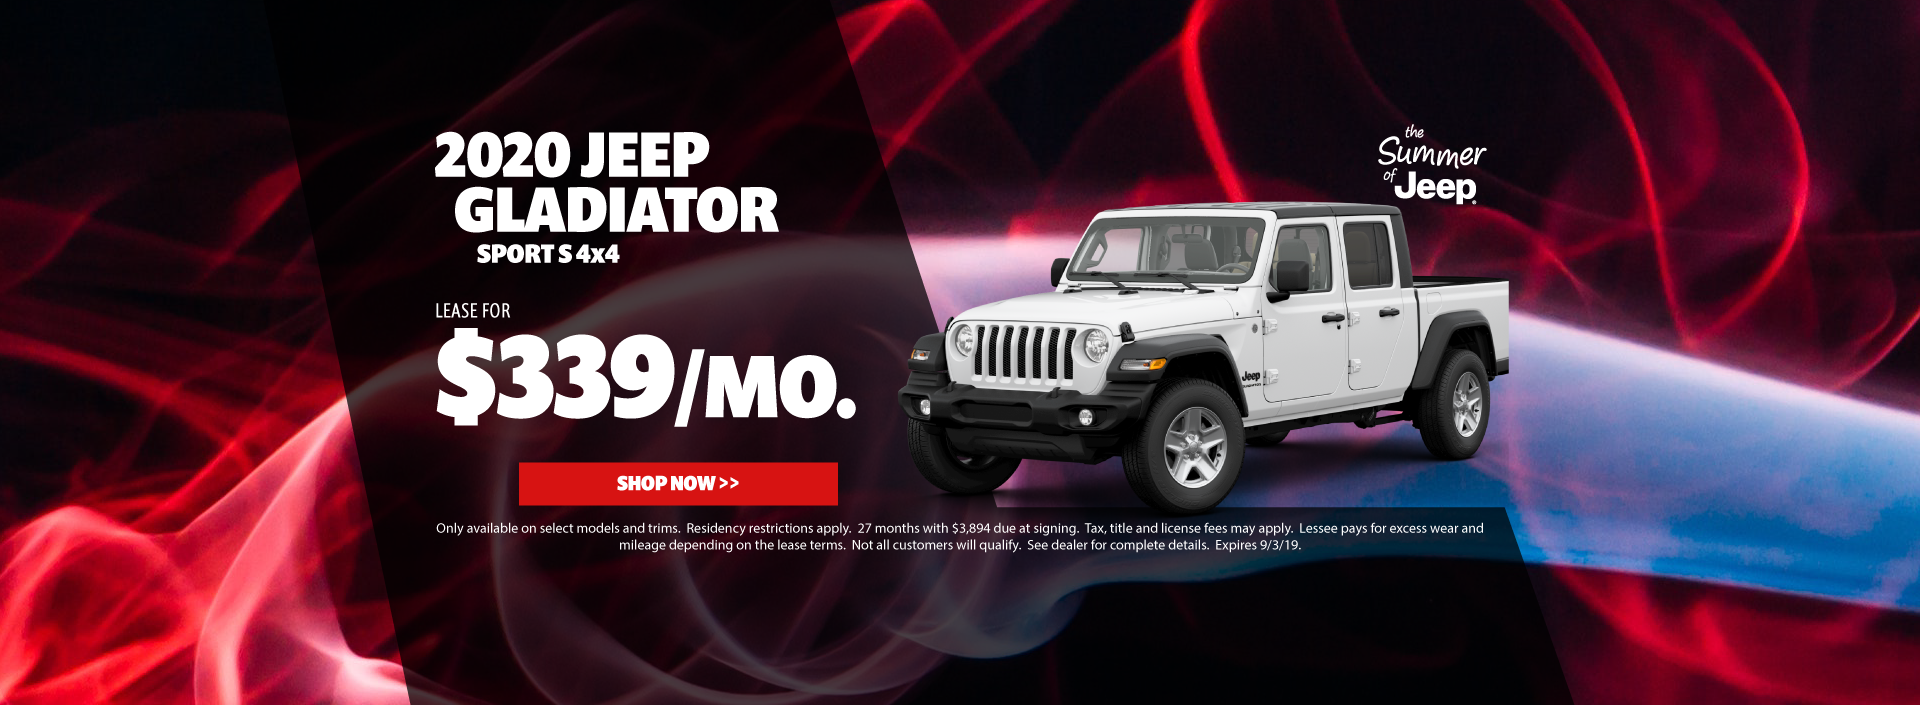 2020 Jeep Gladiator Special